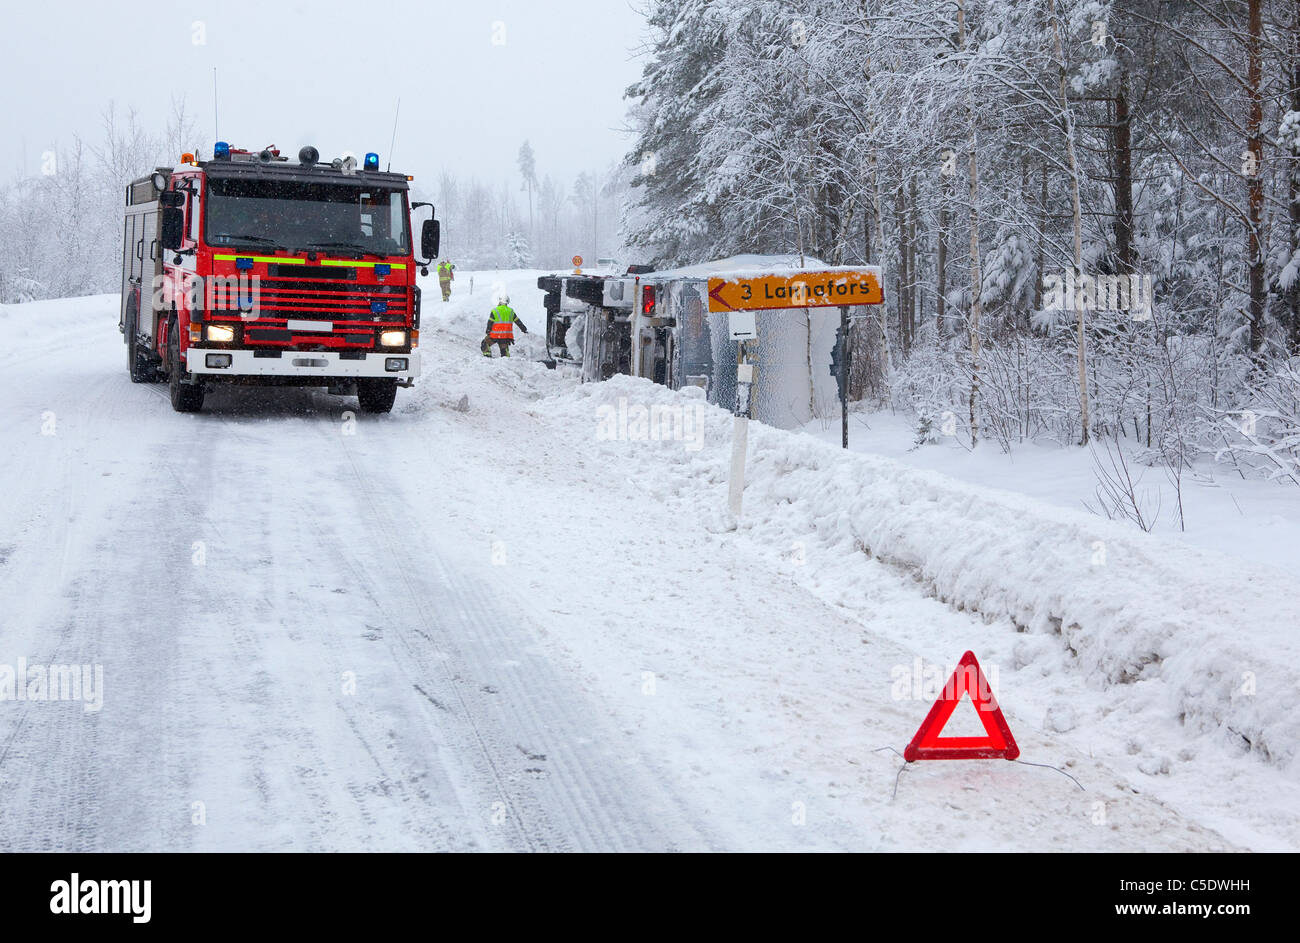 Fire brigade by a vehicle in ditch on winter road with warning sign in foreground - Stock Image